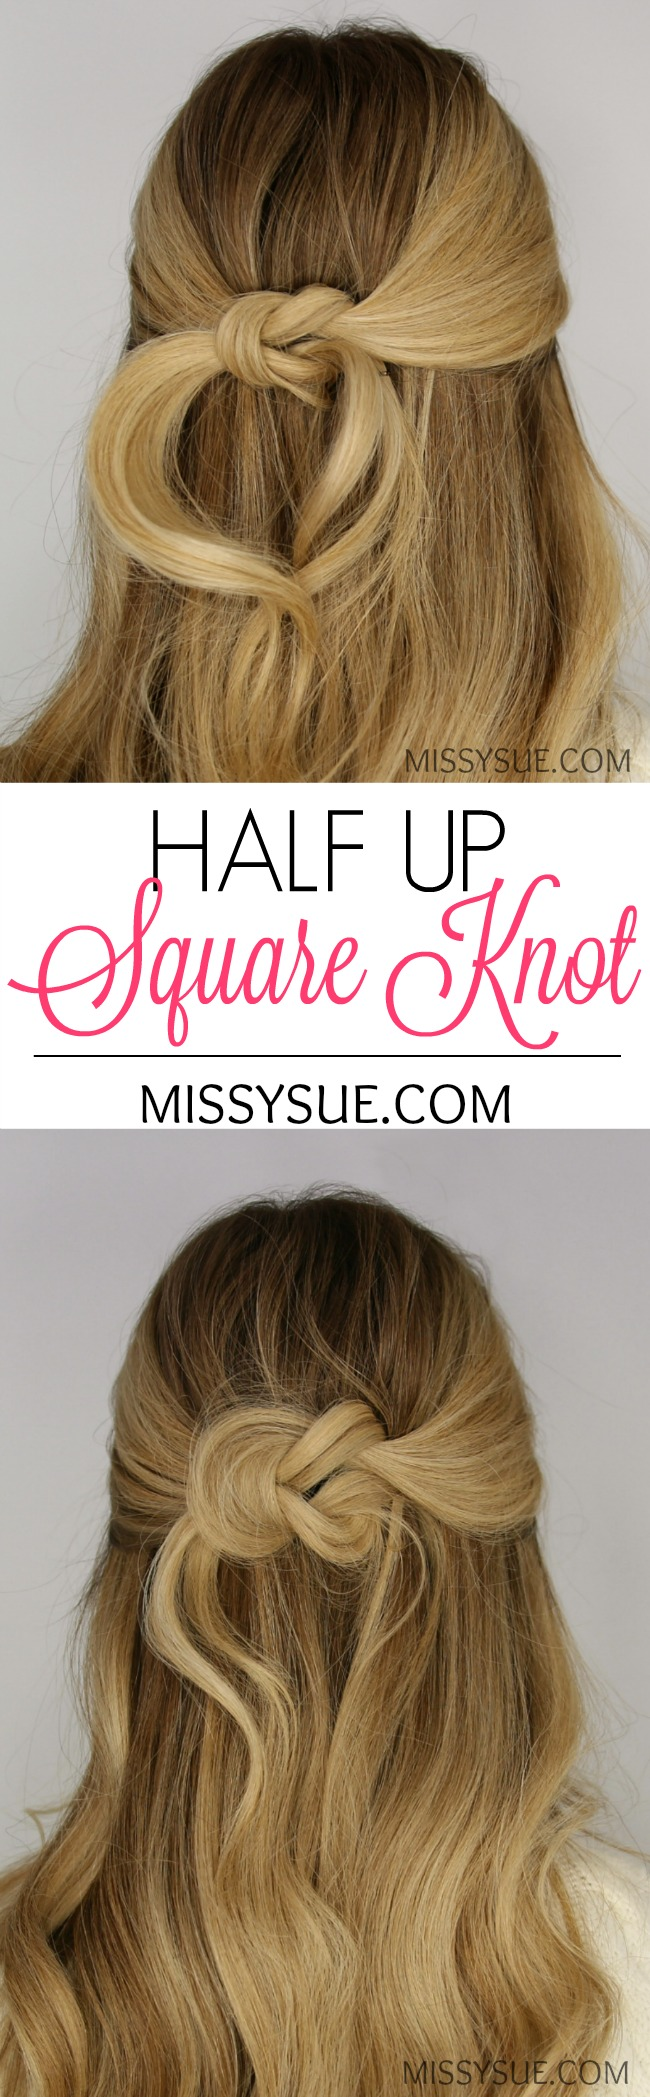 half-up-square-knot-tutorial-missysueblog